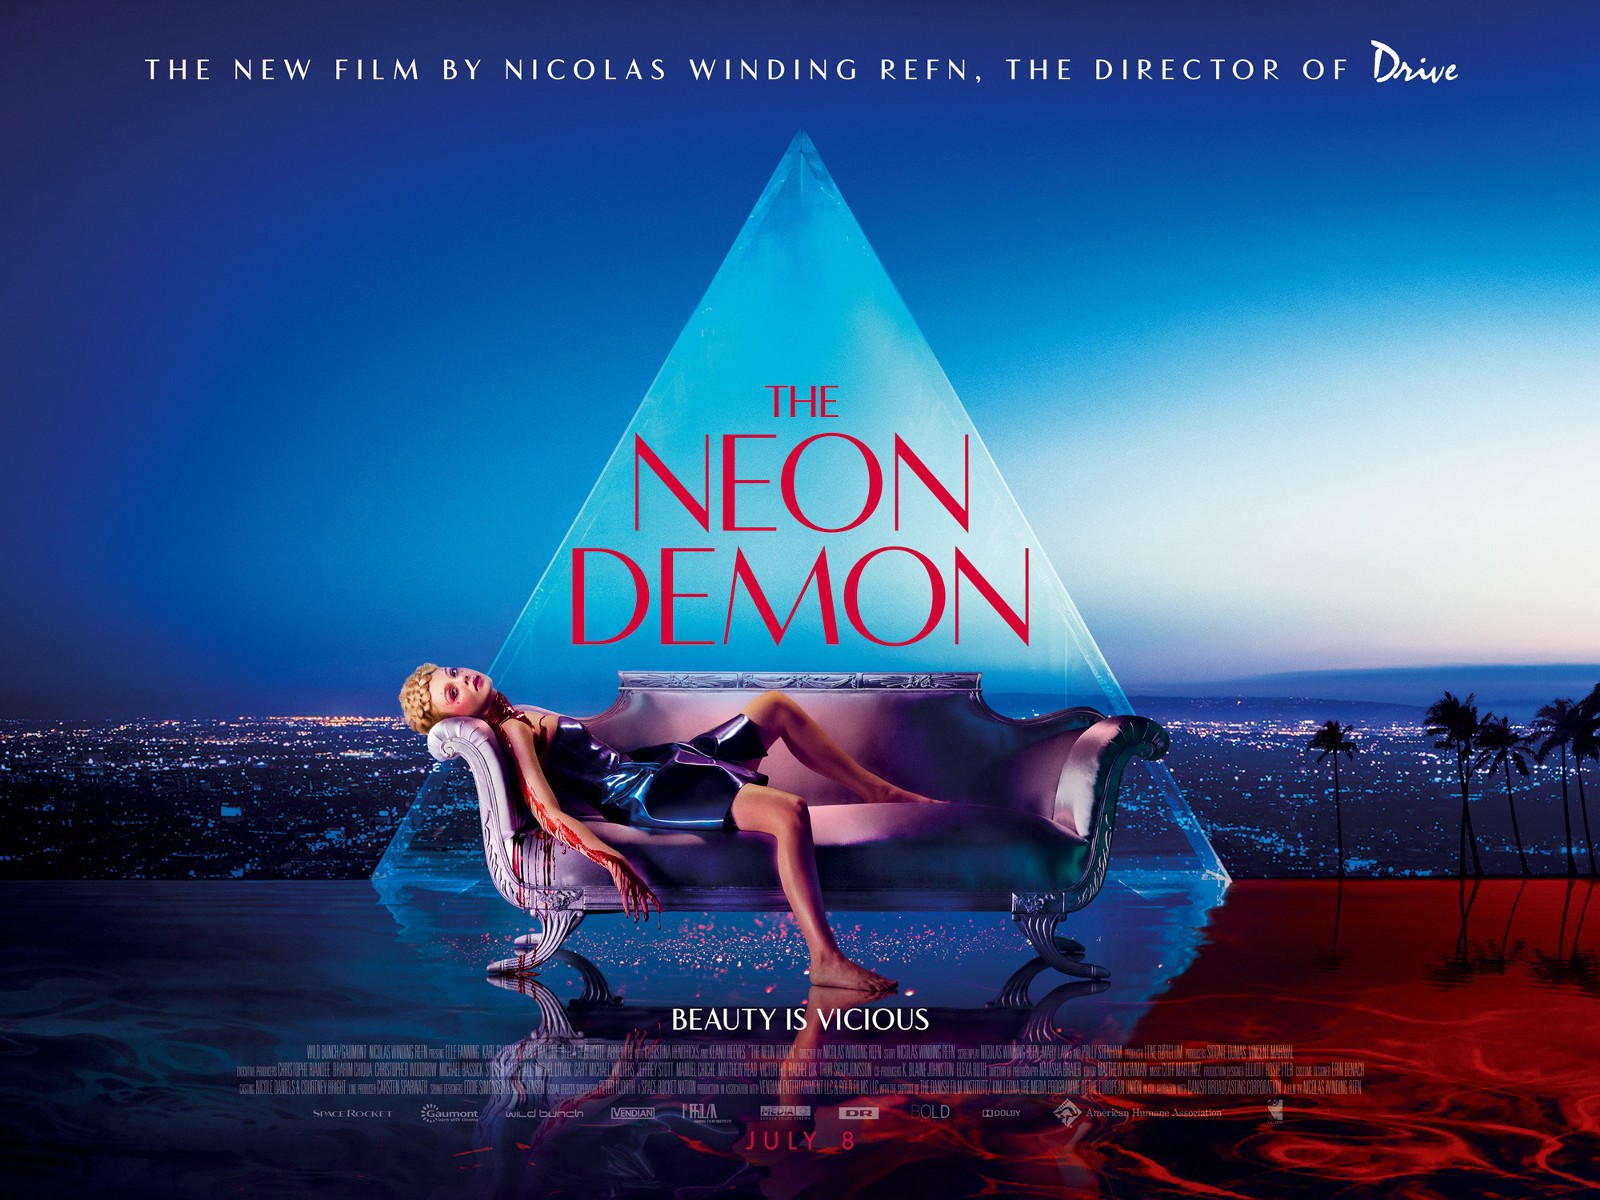 Nicolas Winding Refn Self Styled As NWR Doesnt Care What You Thought Of The Neon Demon Long Felt Penetrated Per Polarizing Is